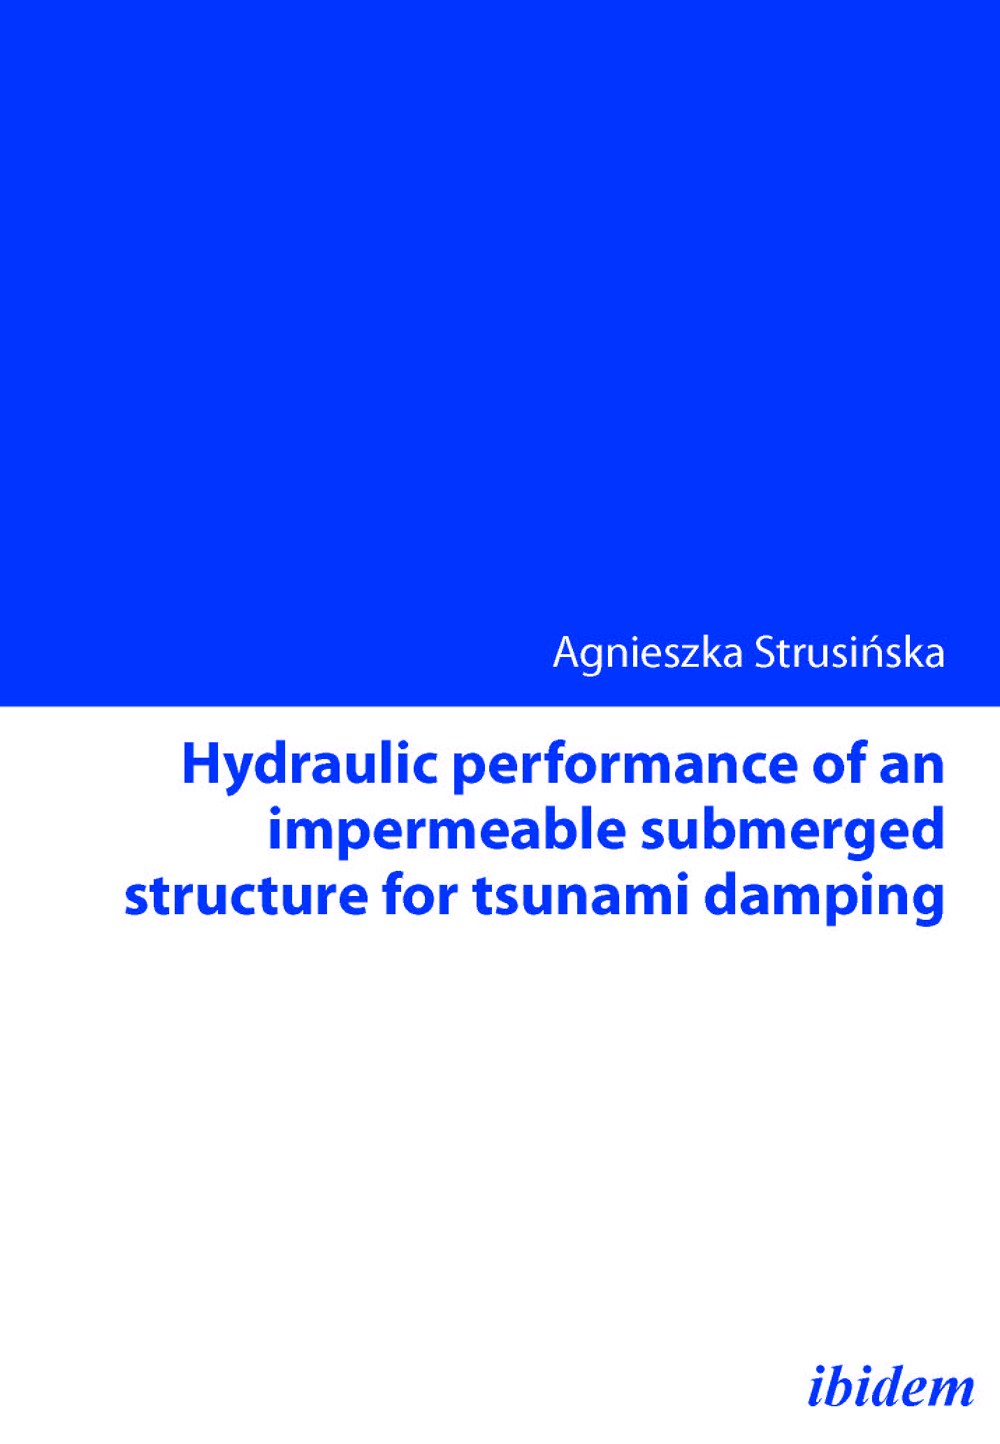 Hydraulic performance of an impermeable submerged structure for tsunami damping